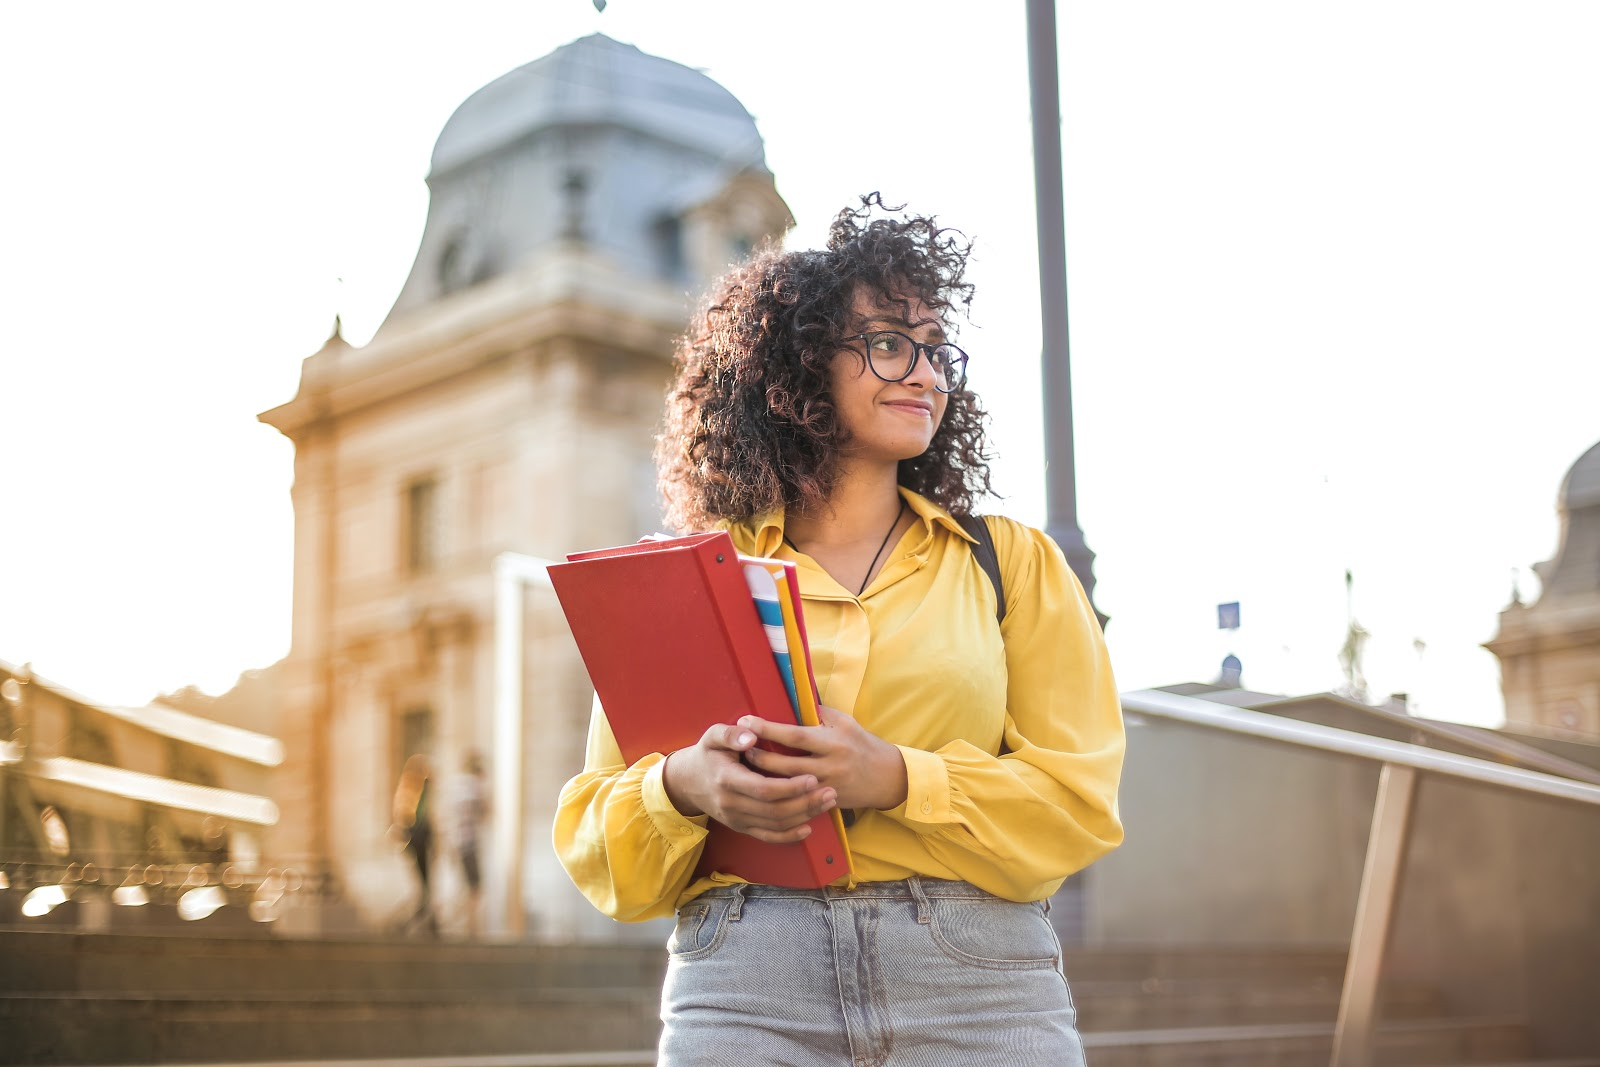 This is a photo of a young college student standing in front of a building on campus with books in her arms.